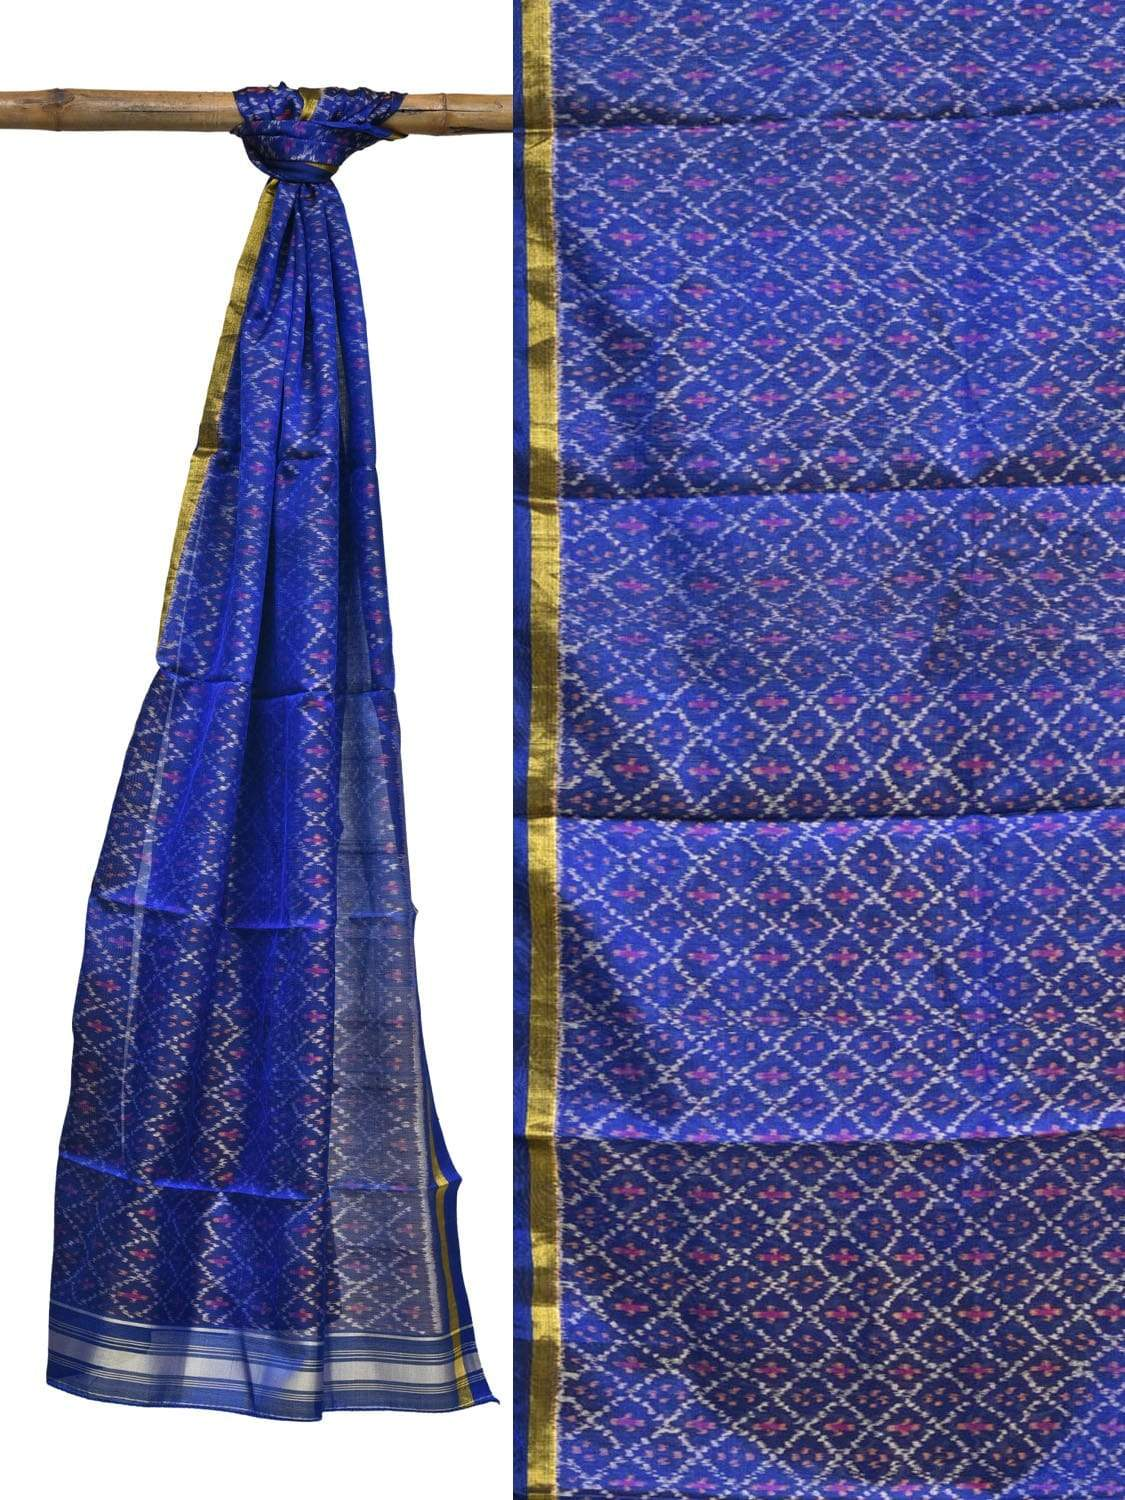 Blue Pochampally Ikat Silk Handloom Stole with Grill Design ds1864